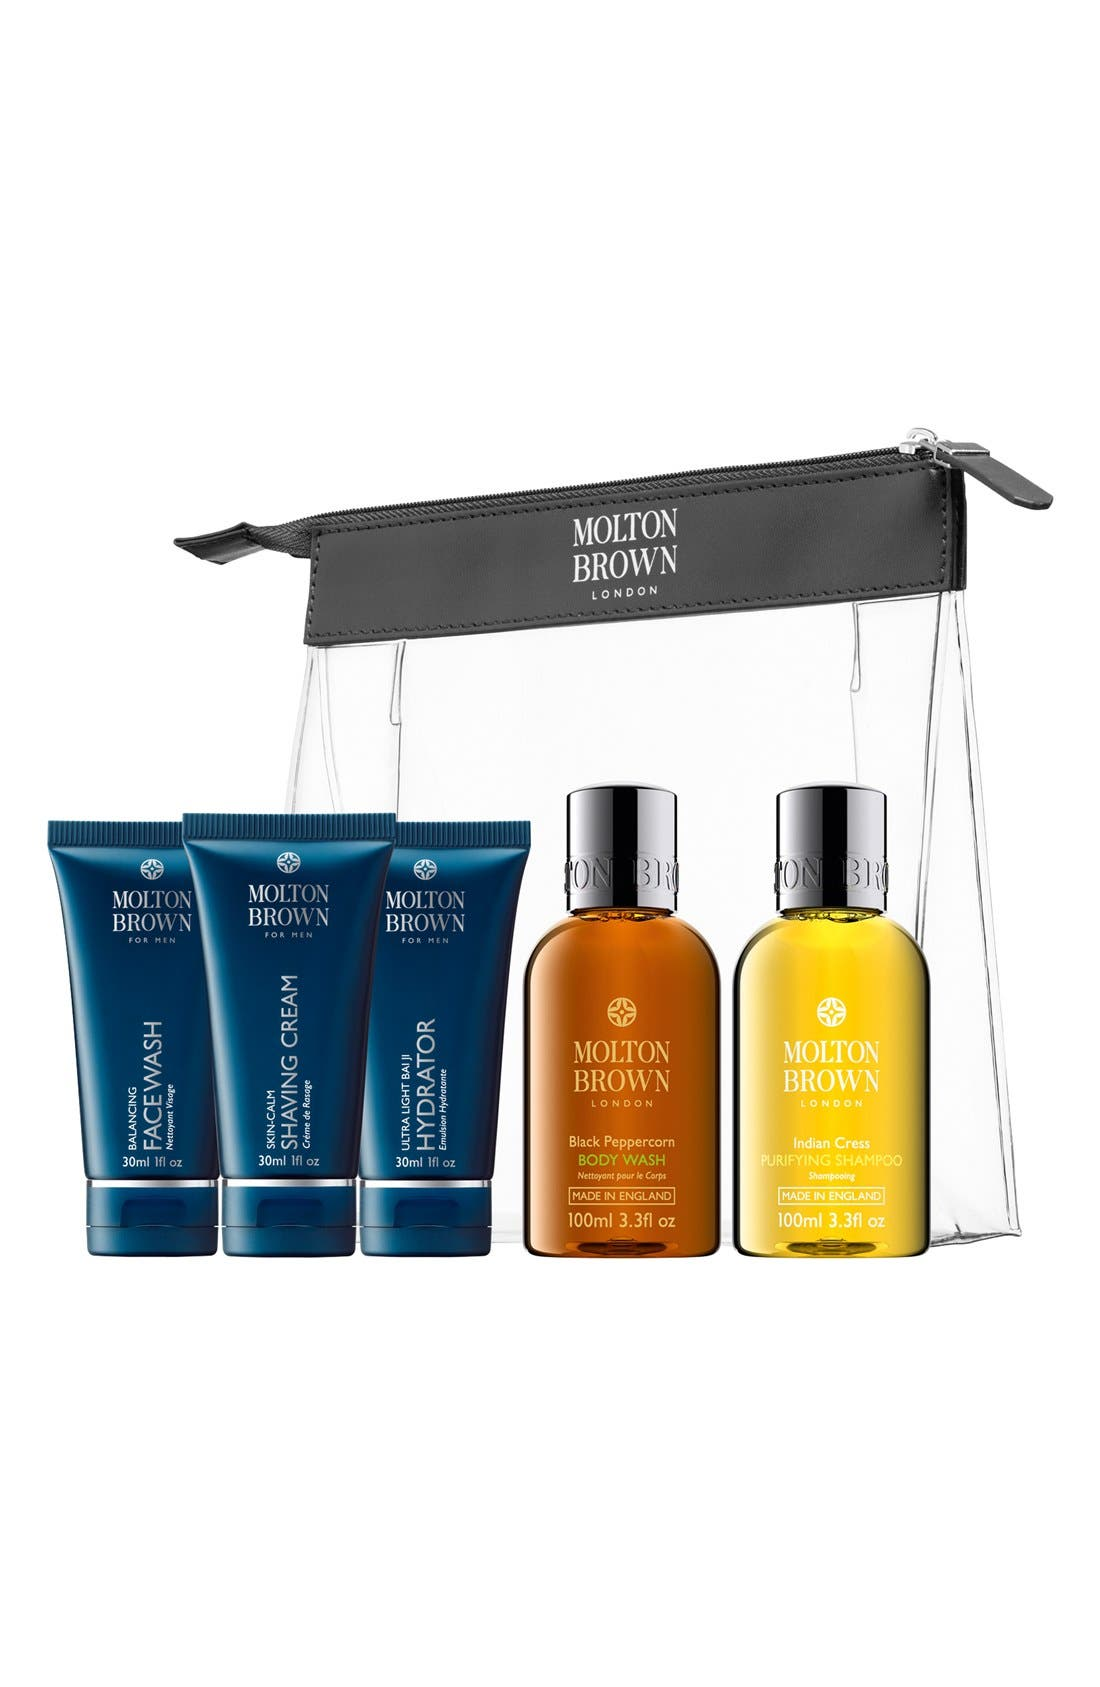 MOLTON BROWN London Mens' Carry-On Set